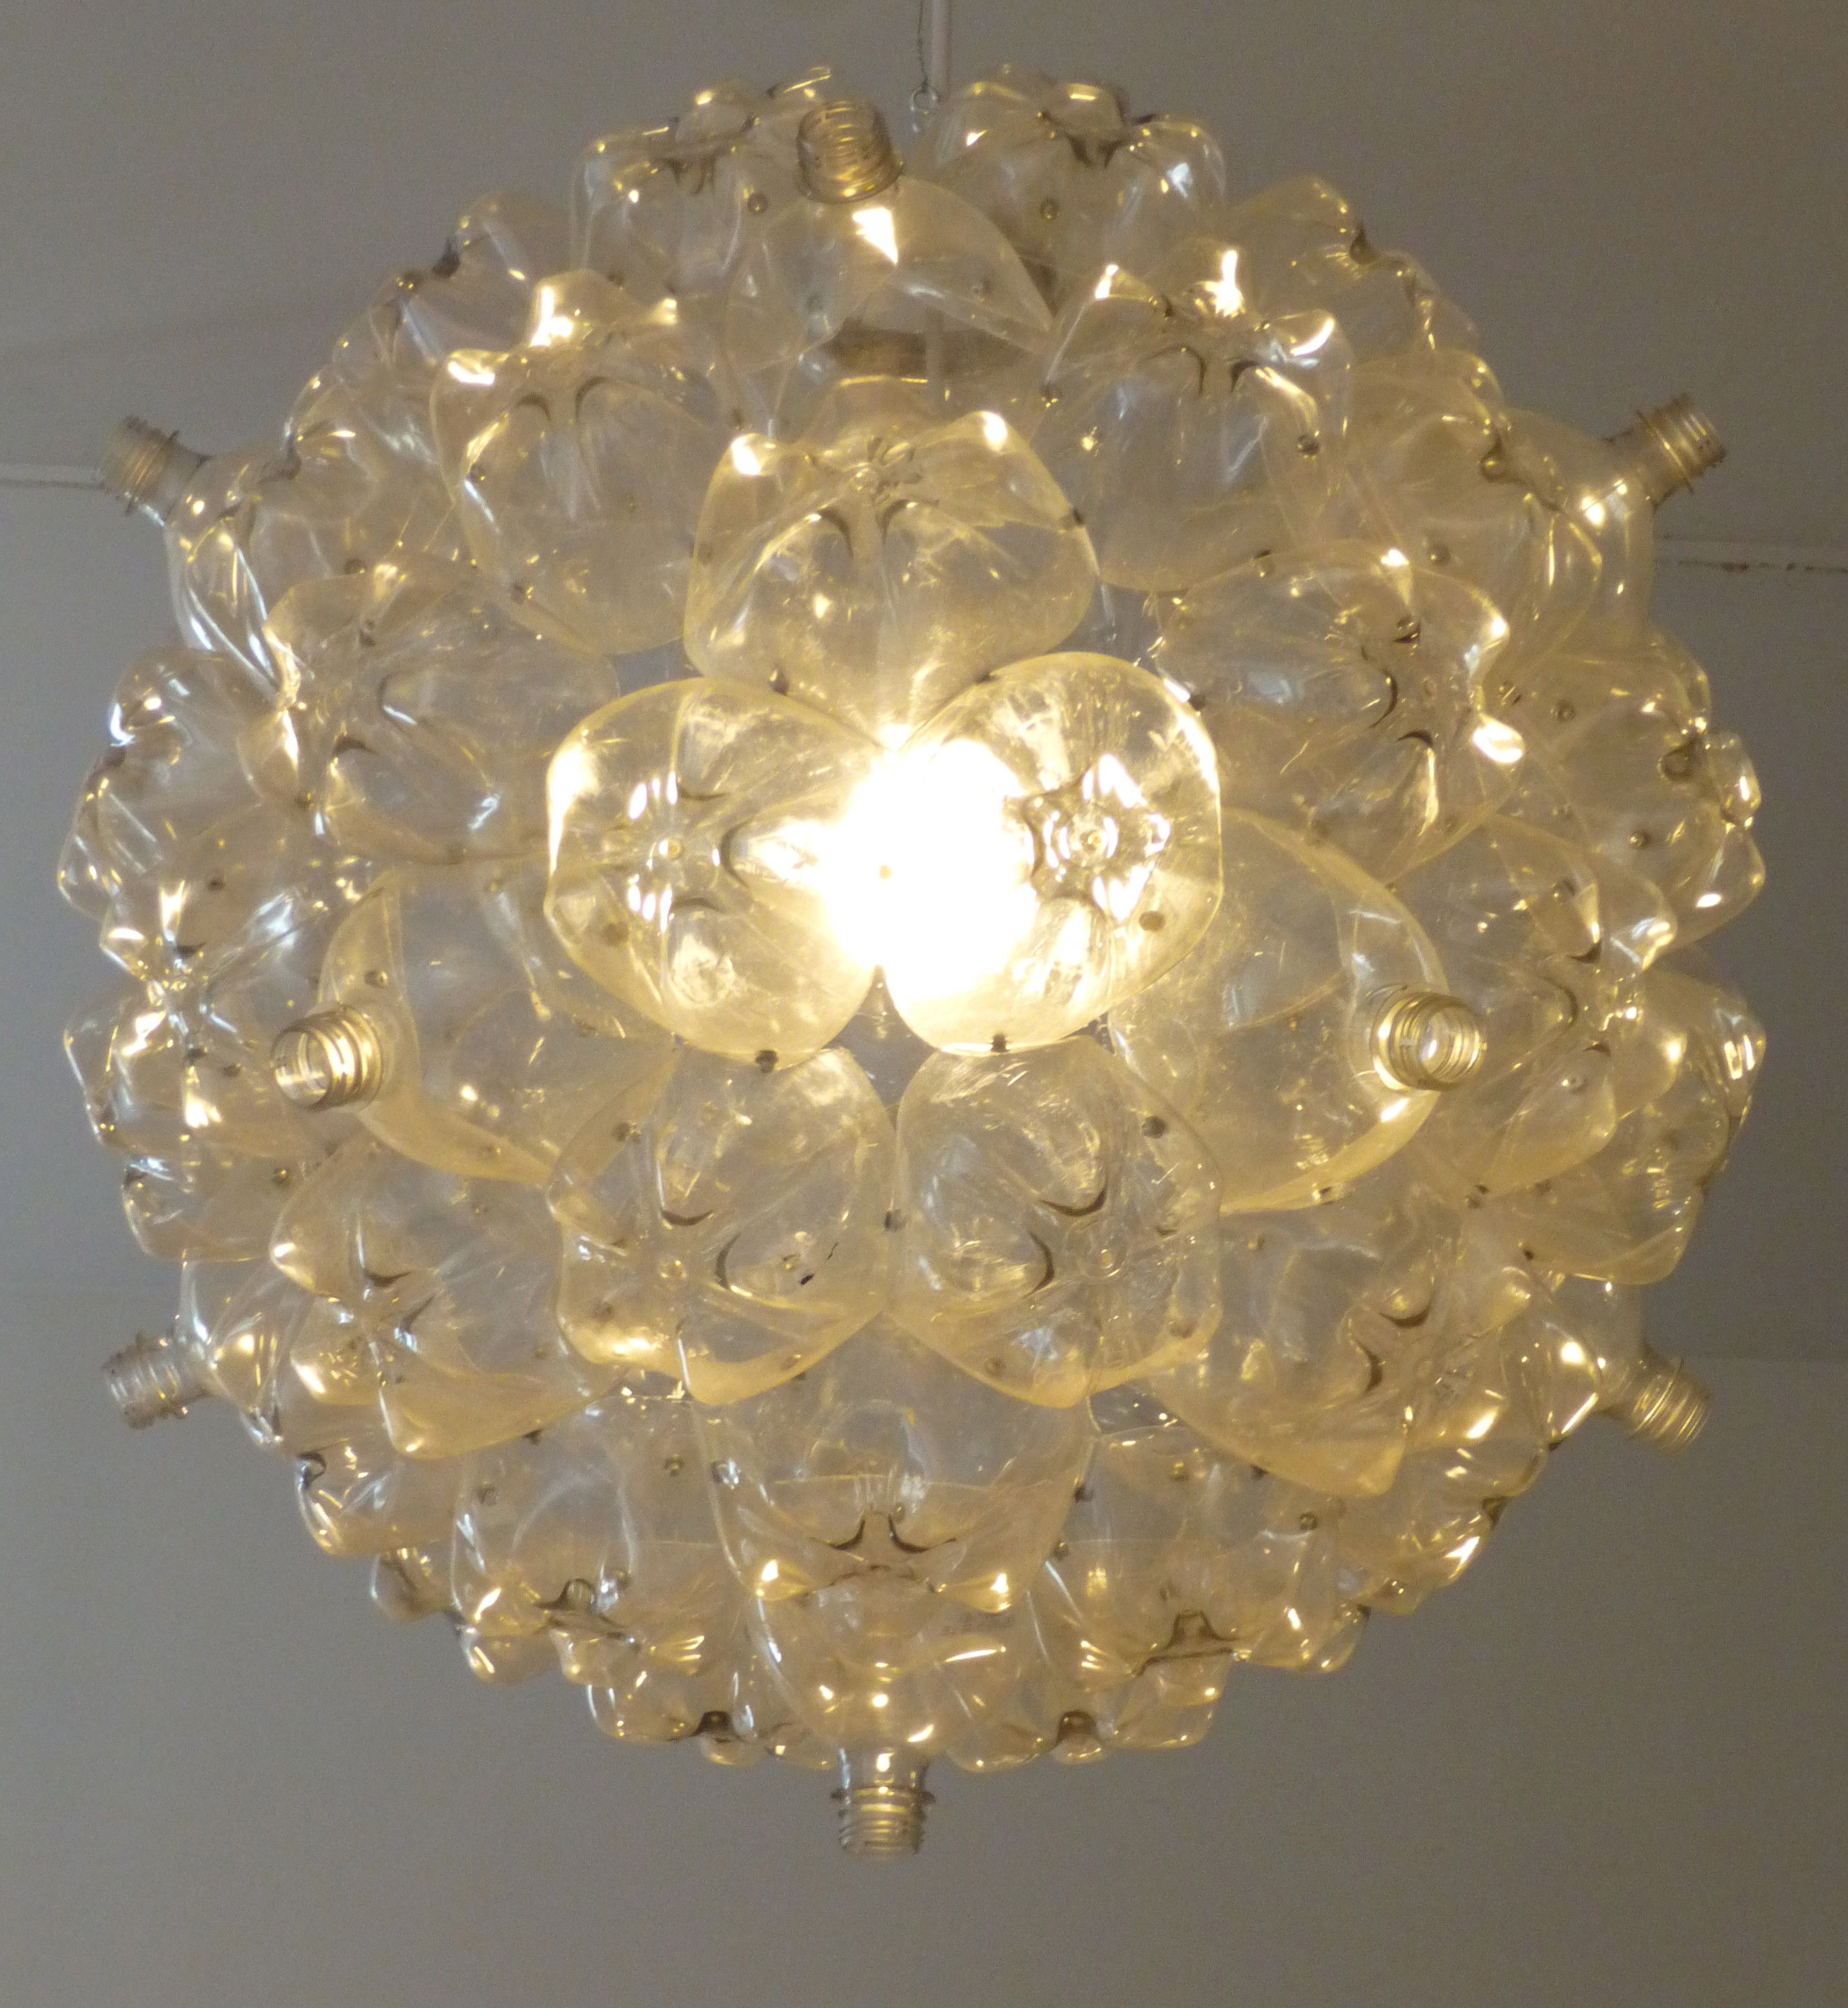 Ideal Pendant Lighting from Upcycled Plastic Soda Bottles | The Worley Gig XX26